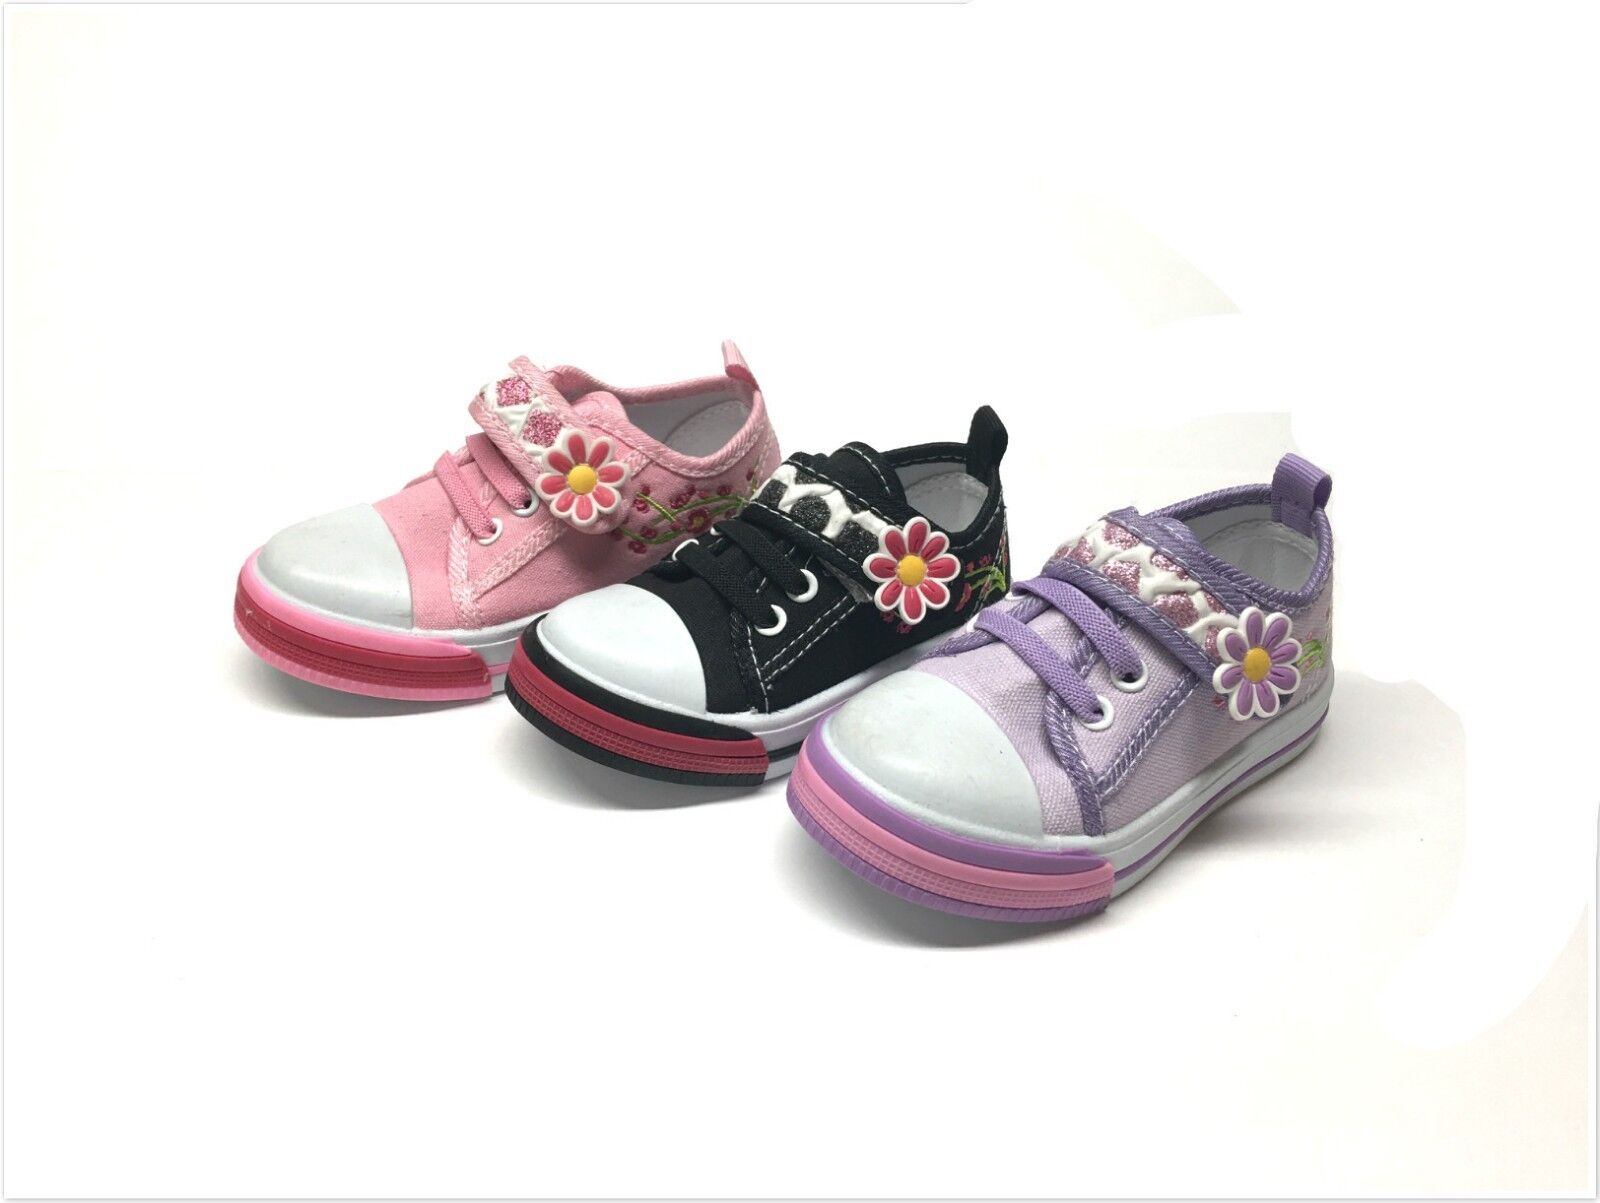 New Infant/Toddler Girls Embroidered Canvas Tennis Shoes 6 ~ 11